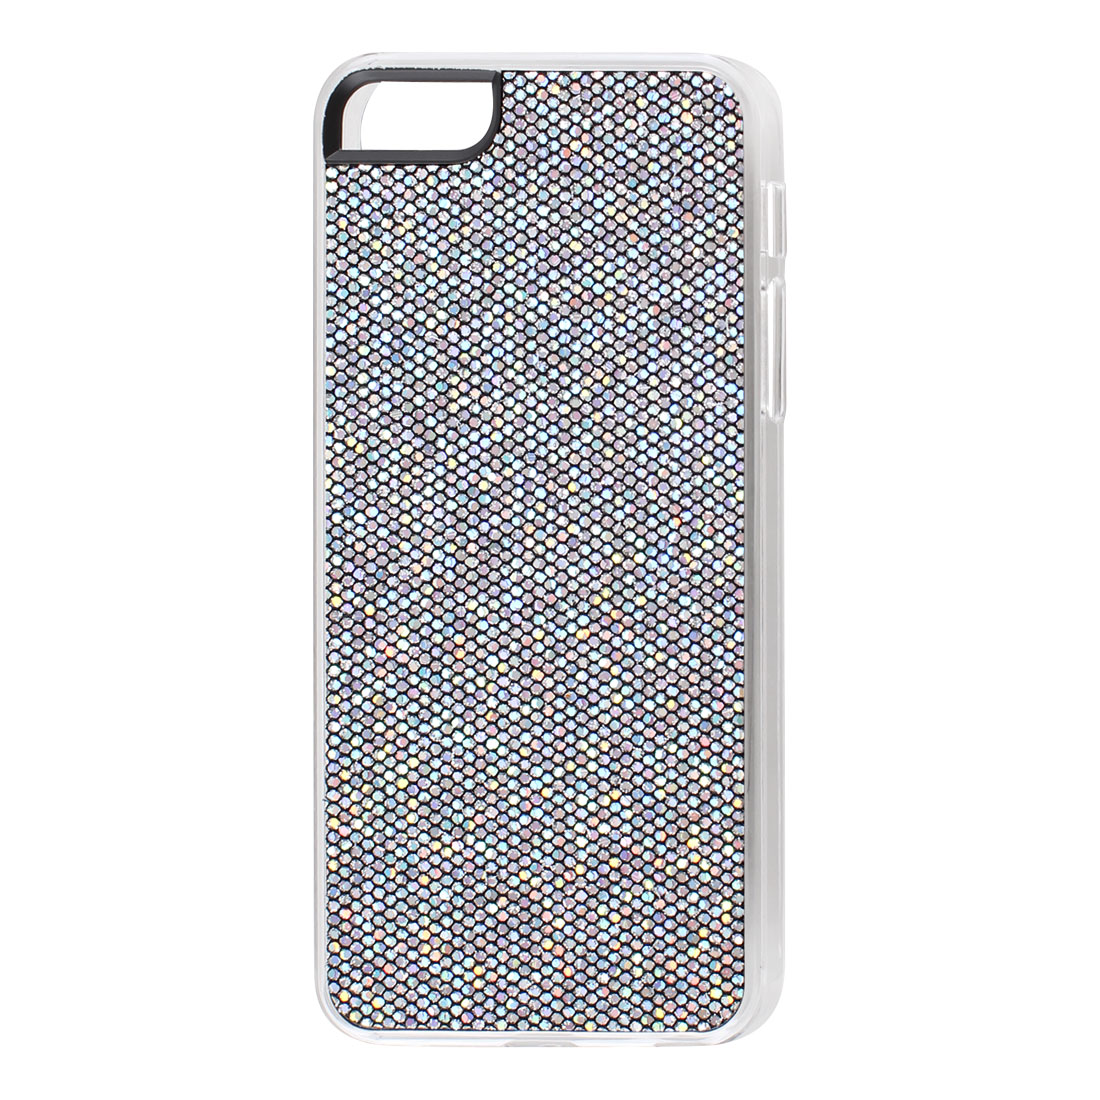 Gray Sparkle Glitter Hexagons Hard Back Case Cover for iPhone 5 5G